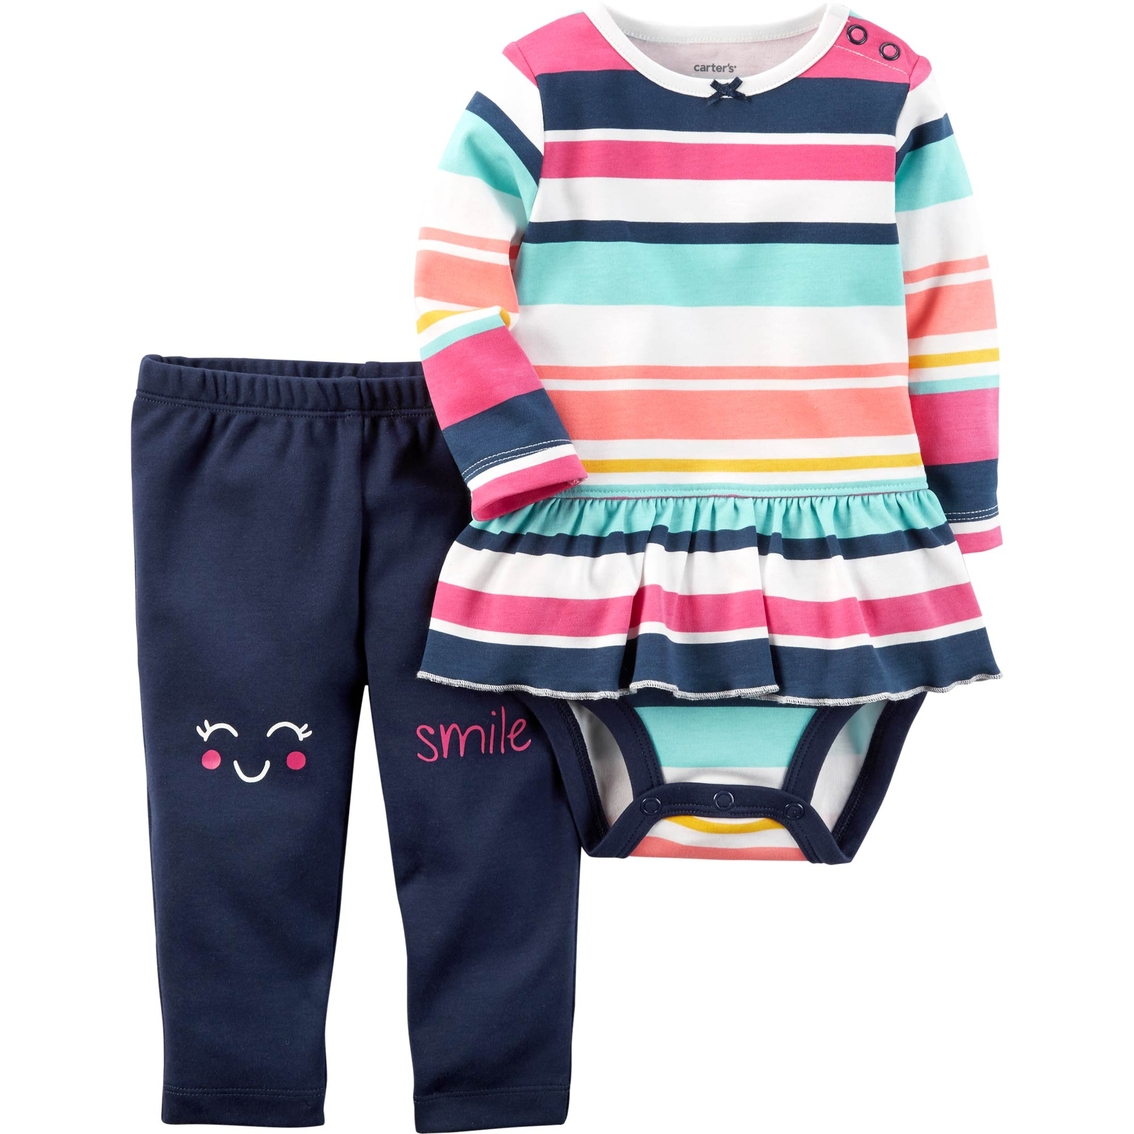 Carter's Infant Girls 2 Pc. Striped Bodysuit Pant Set | Baby Girl 0-24  Months | Baby & Toys | Shop The Exchange